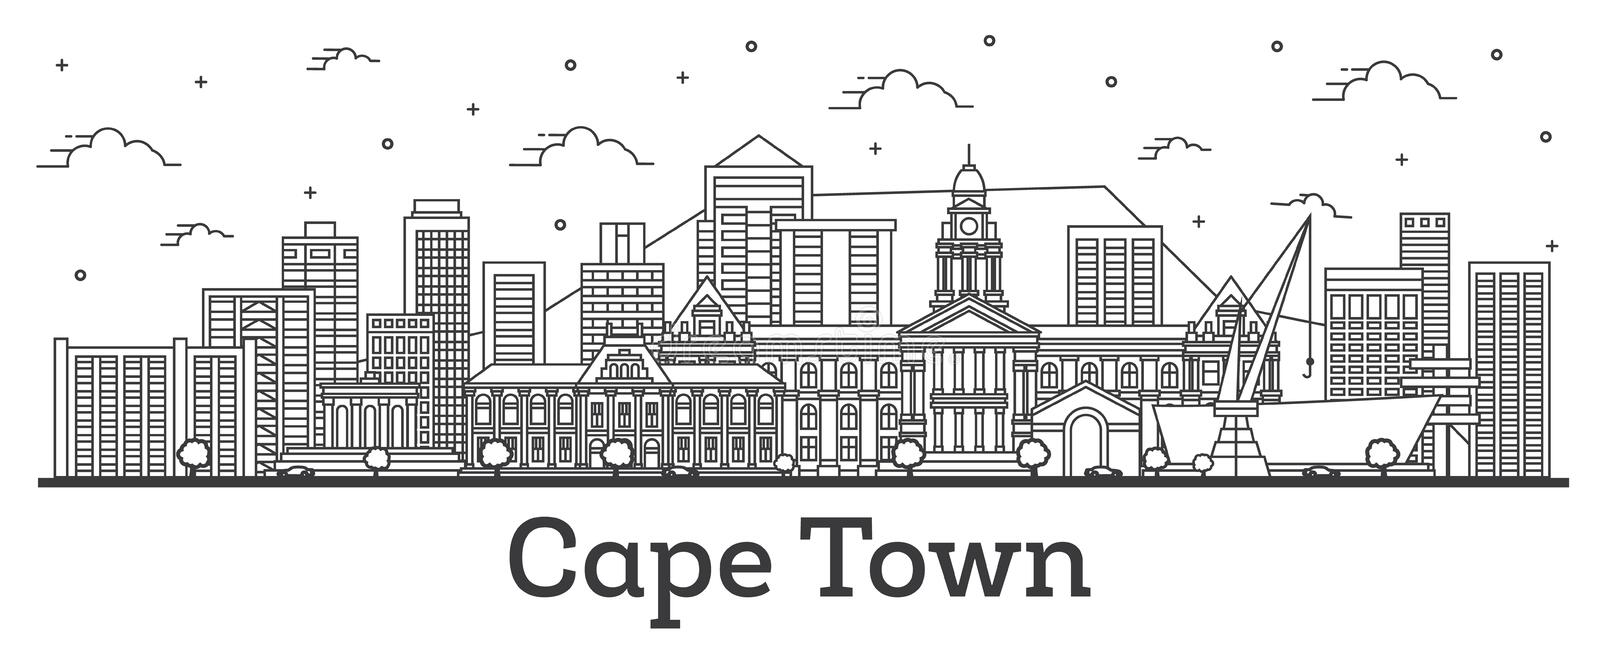 Outline Cape Town South Africa City Skyline with Modern Buildings Isolated on White stock illustration